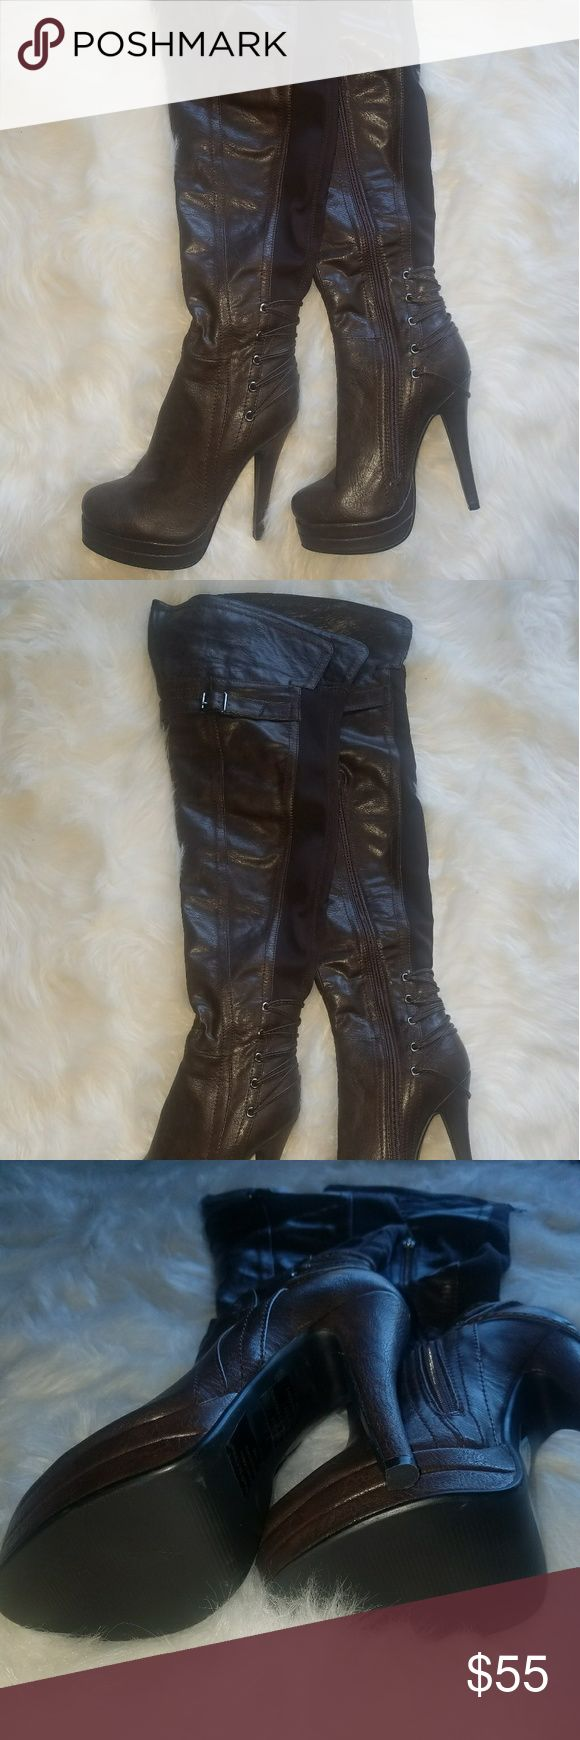 Brown thigh high boots Brown thigh high boots size 7 Shoes Over the Knee Boots